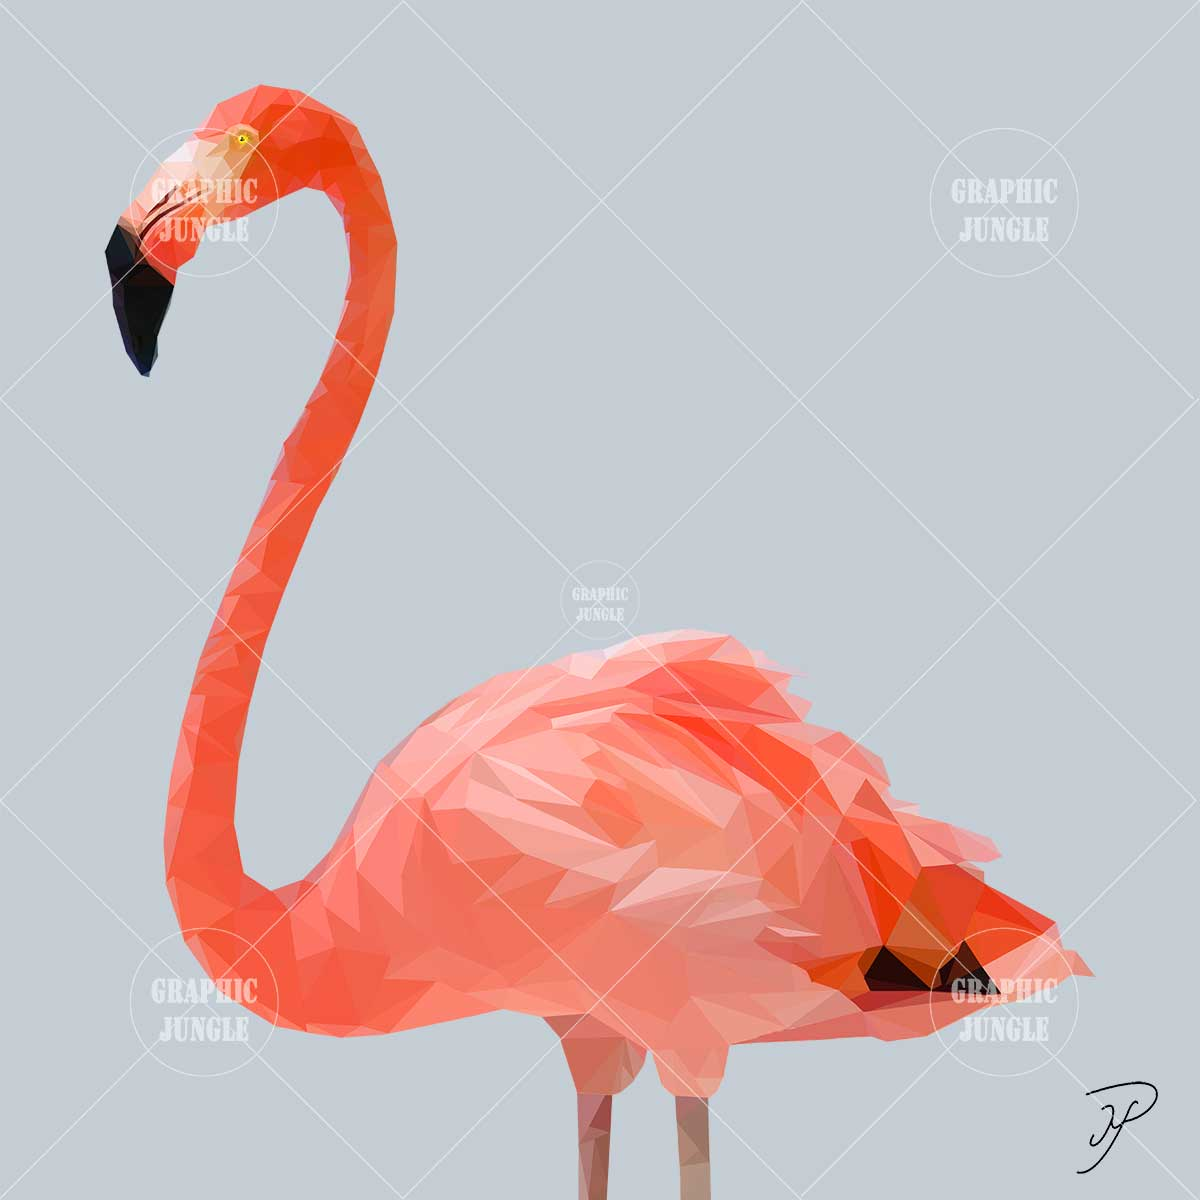 13 FLAMINGO - Graphic Jungle